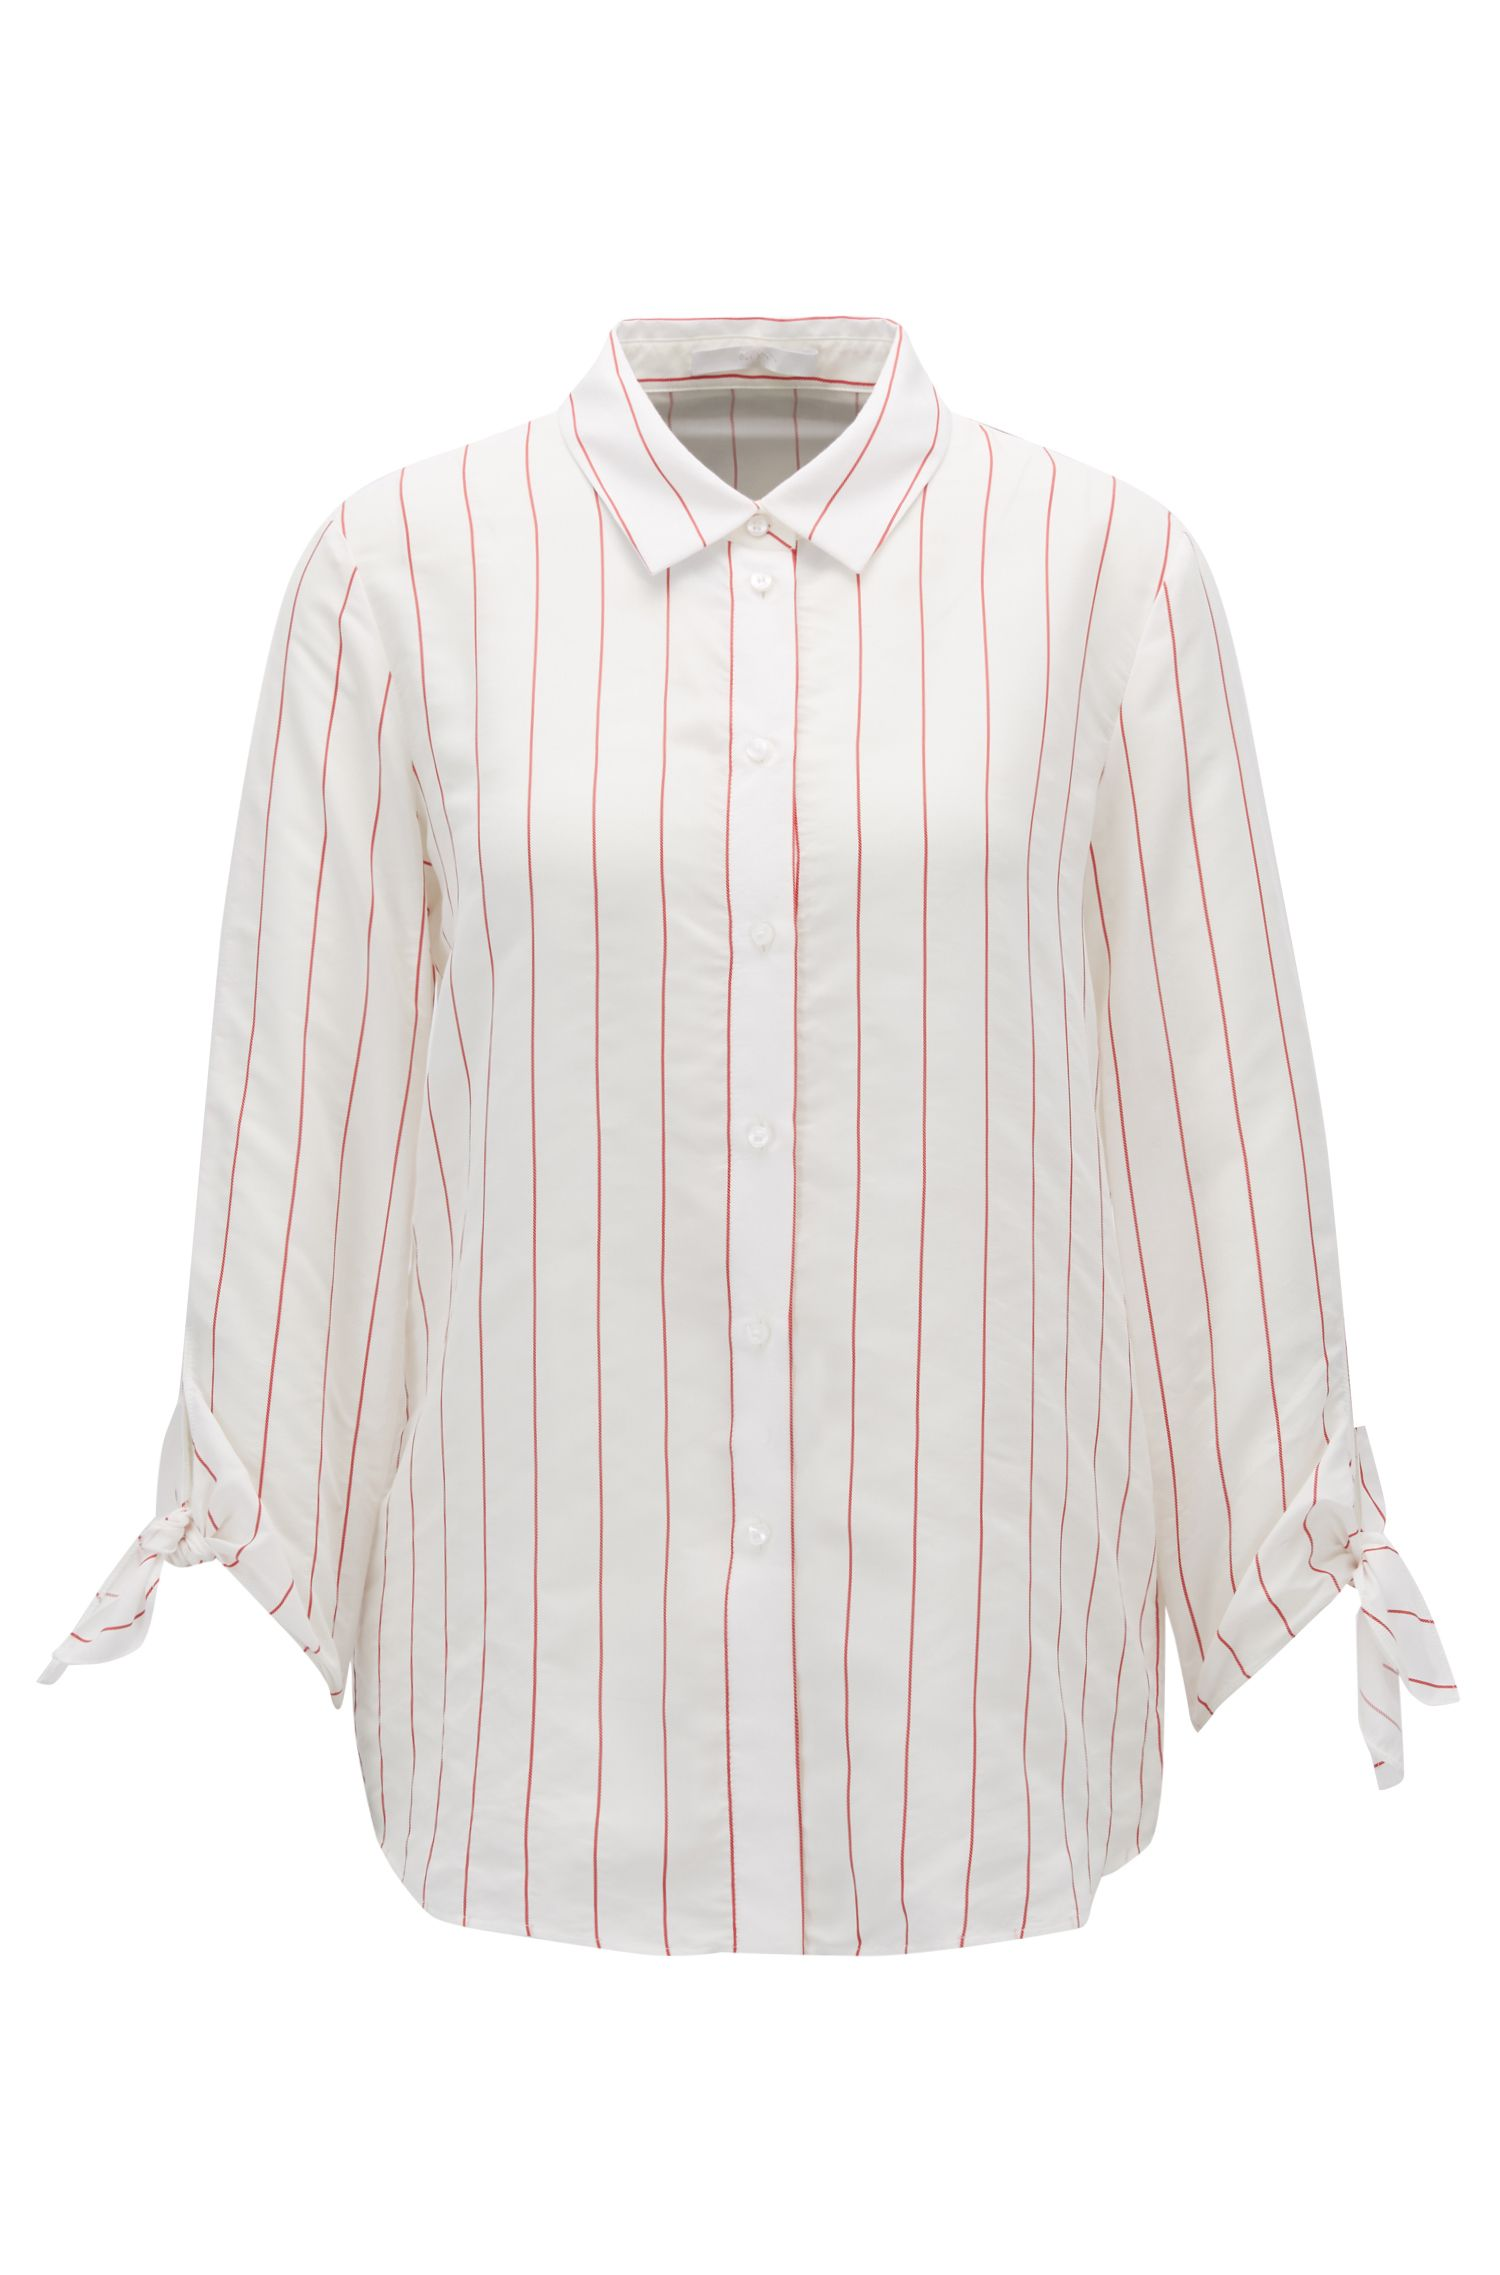 Maritime-striped blouse with tie-sleeve detail